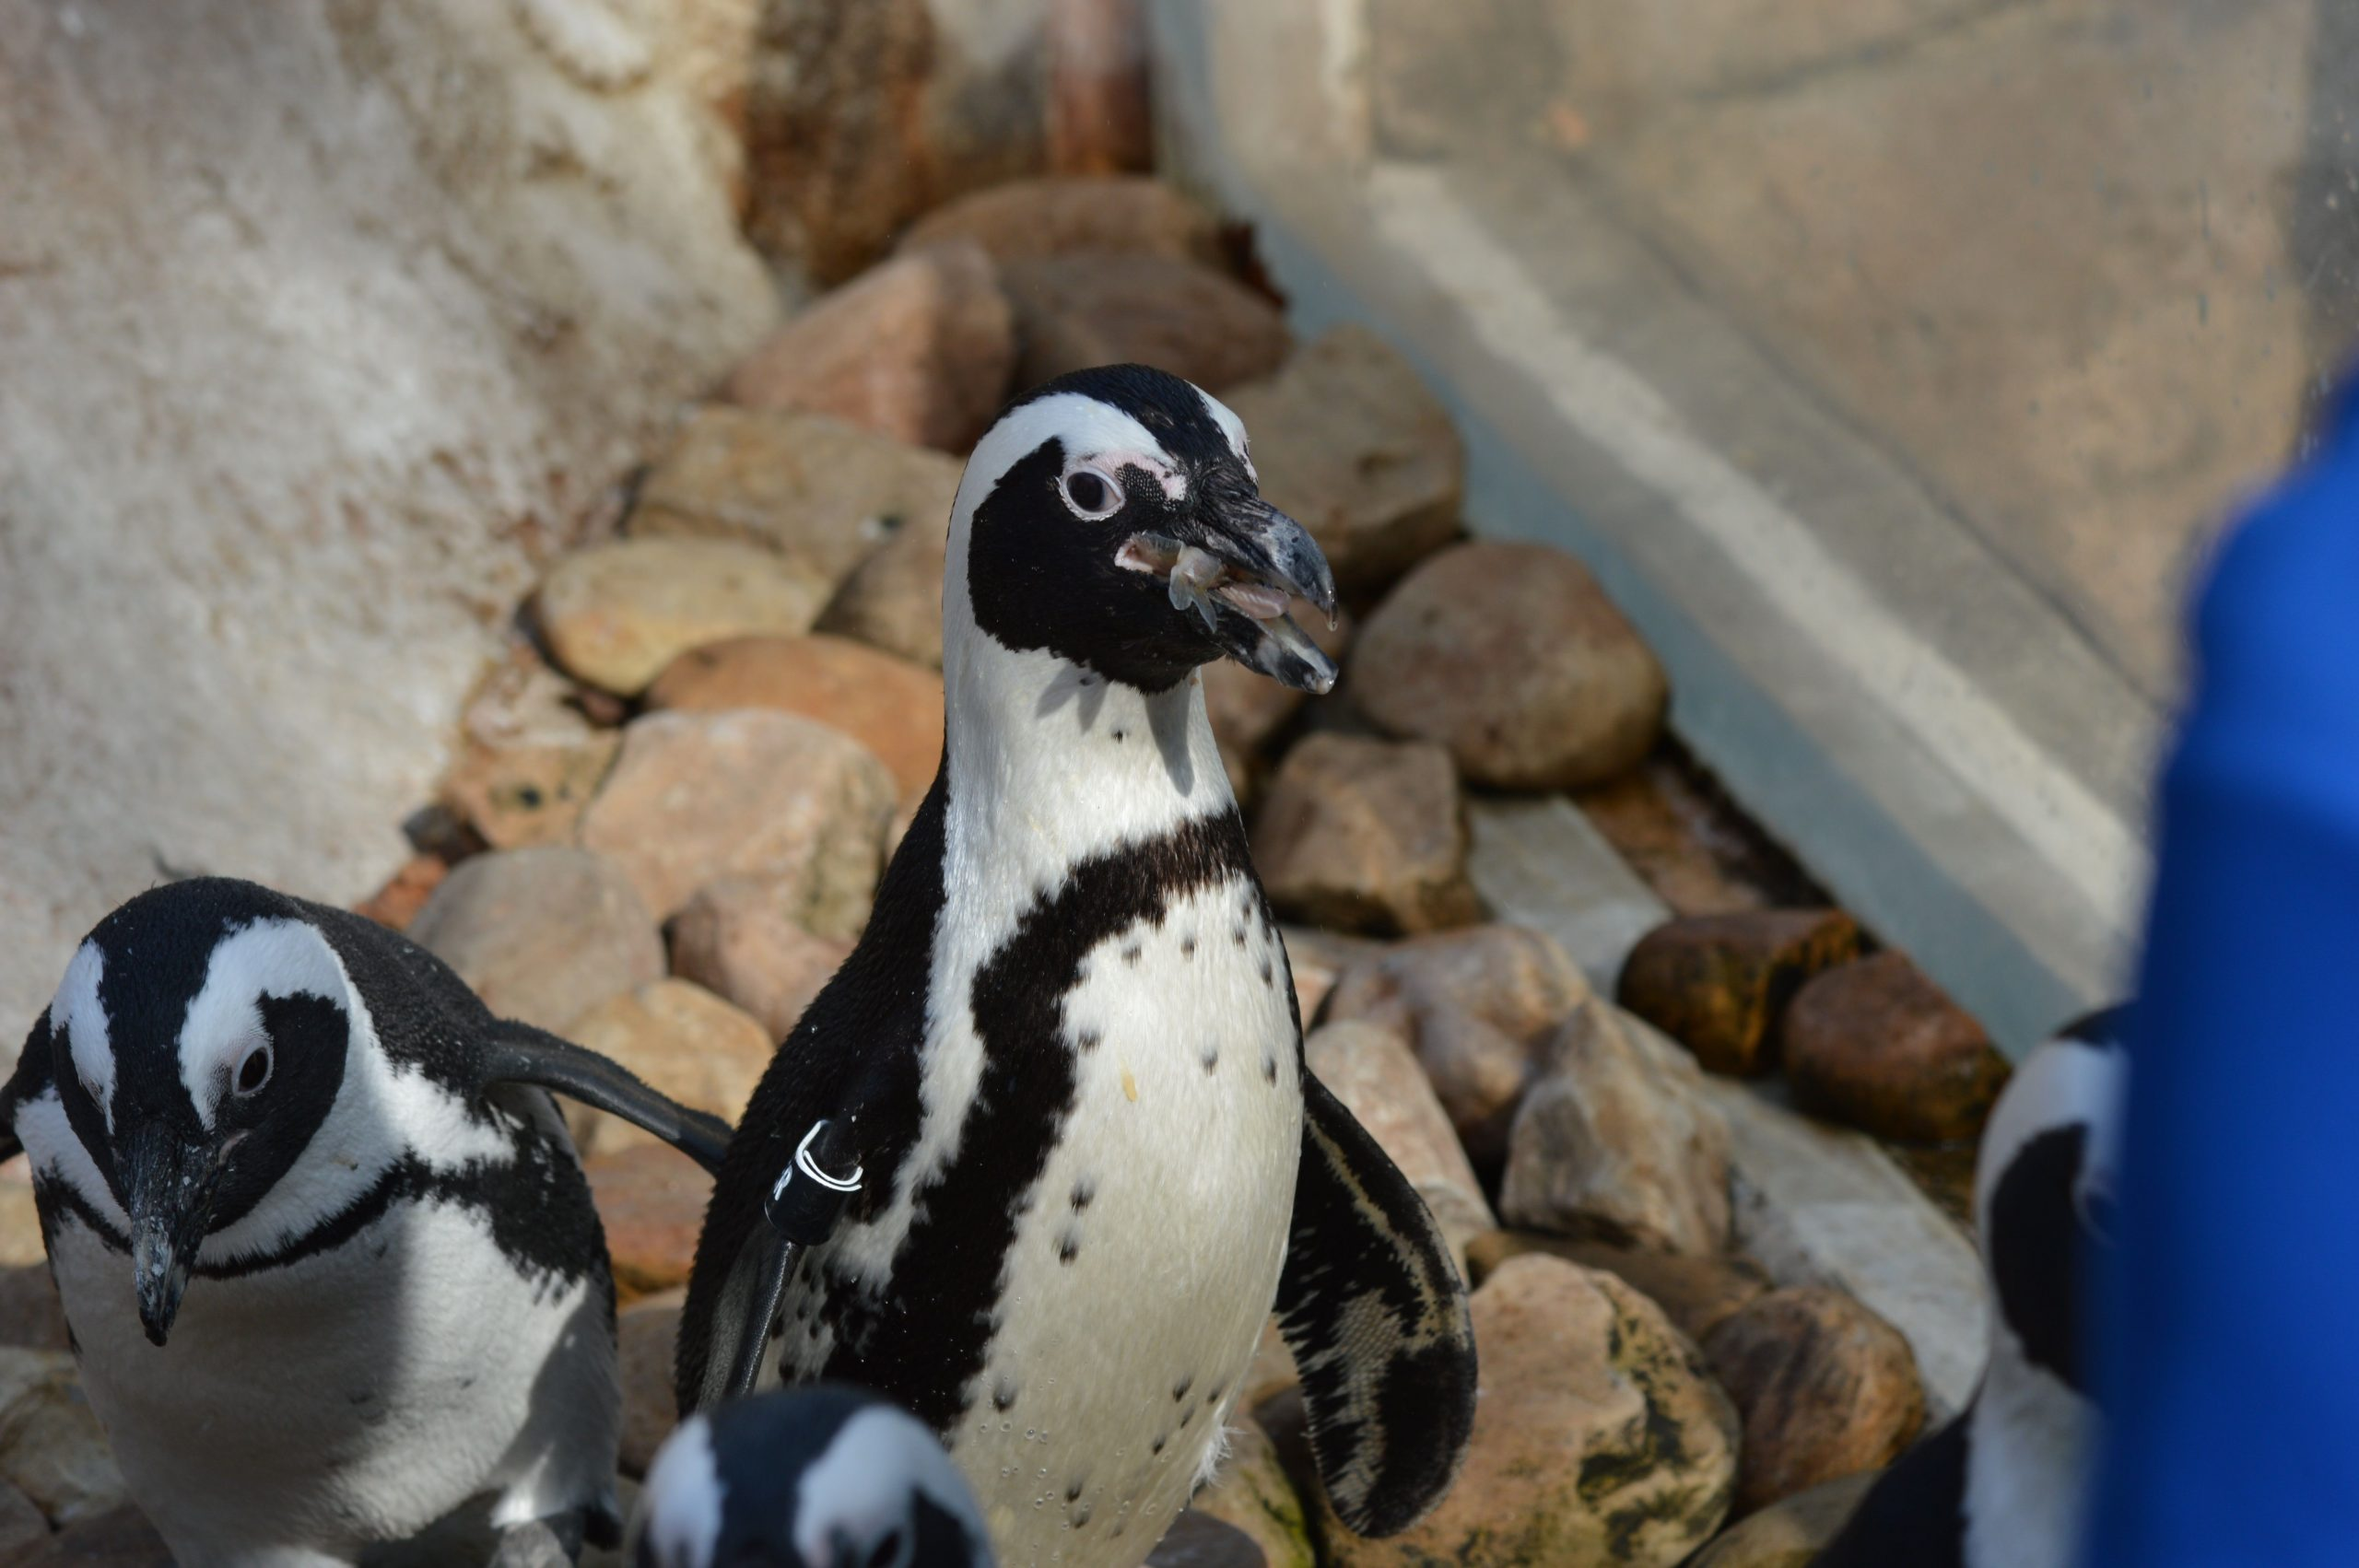 Two African Penguins standing on rocks, one eating a fish